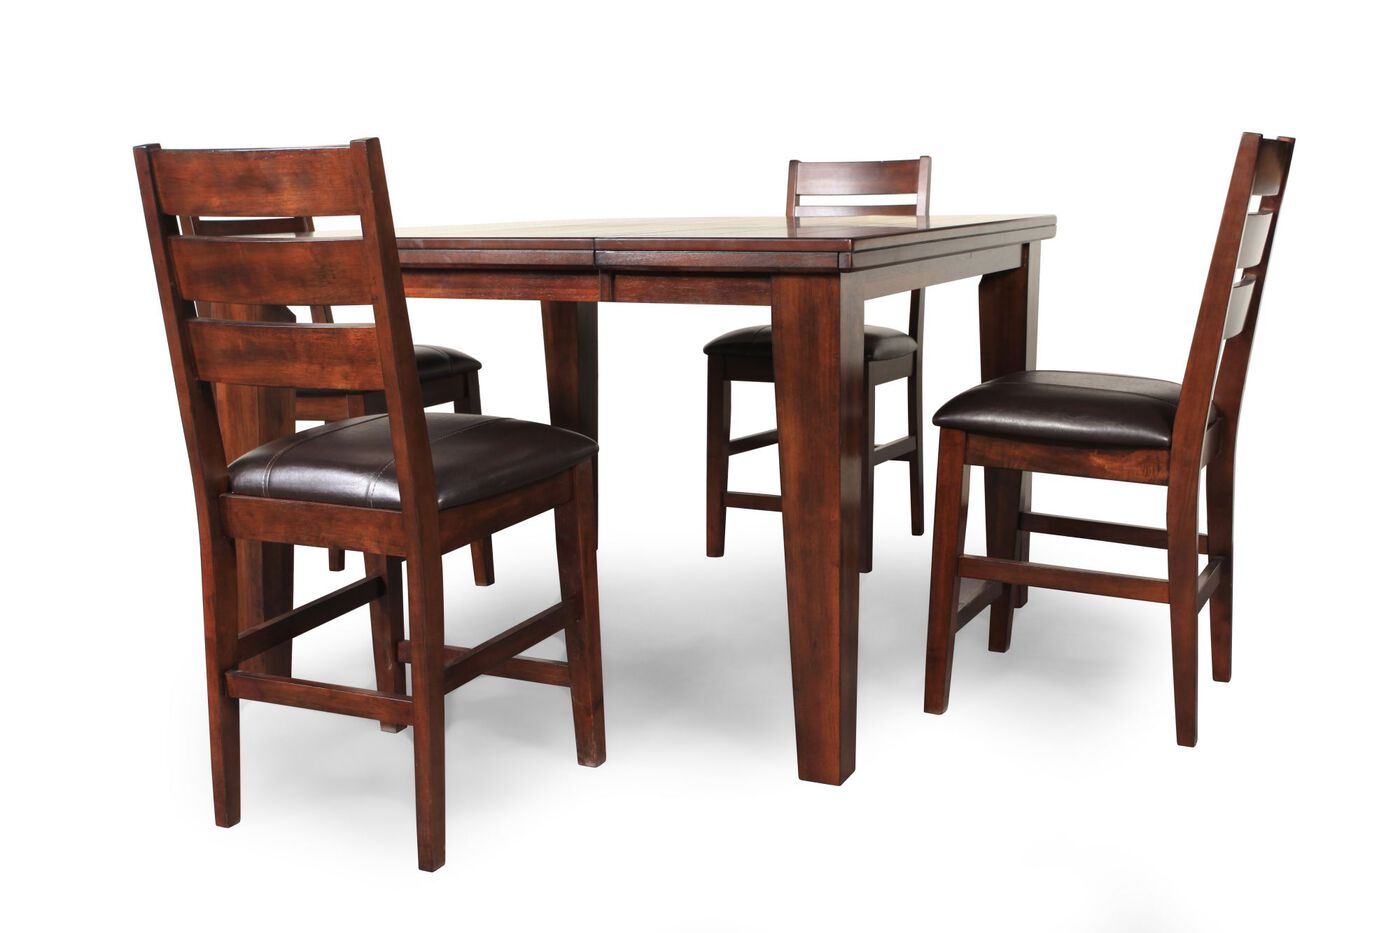 Five Piece Traditional 36quot Pub Set with Leaf Insert in  : ASH D4425E047PUB from www.mathisbrothers.com size 1400 x 933 jpeg 83kB